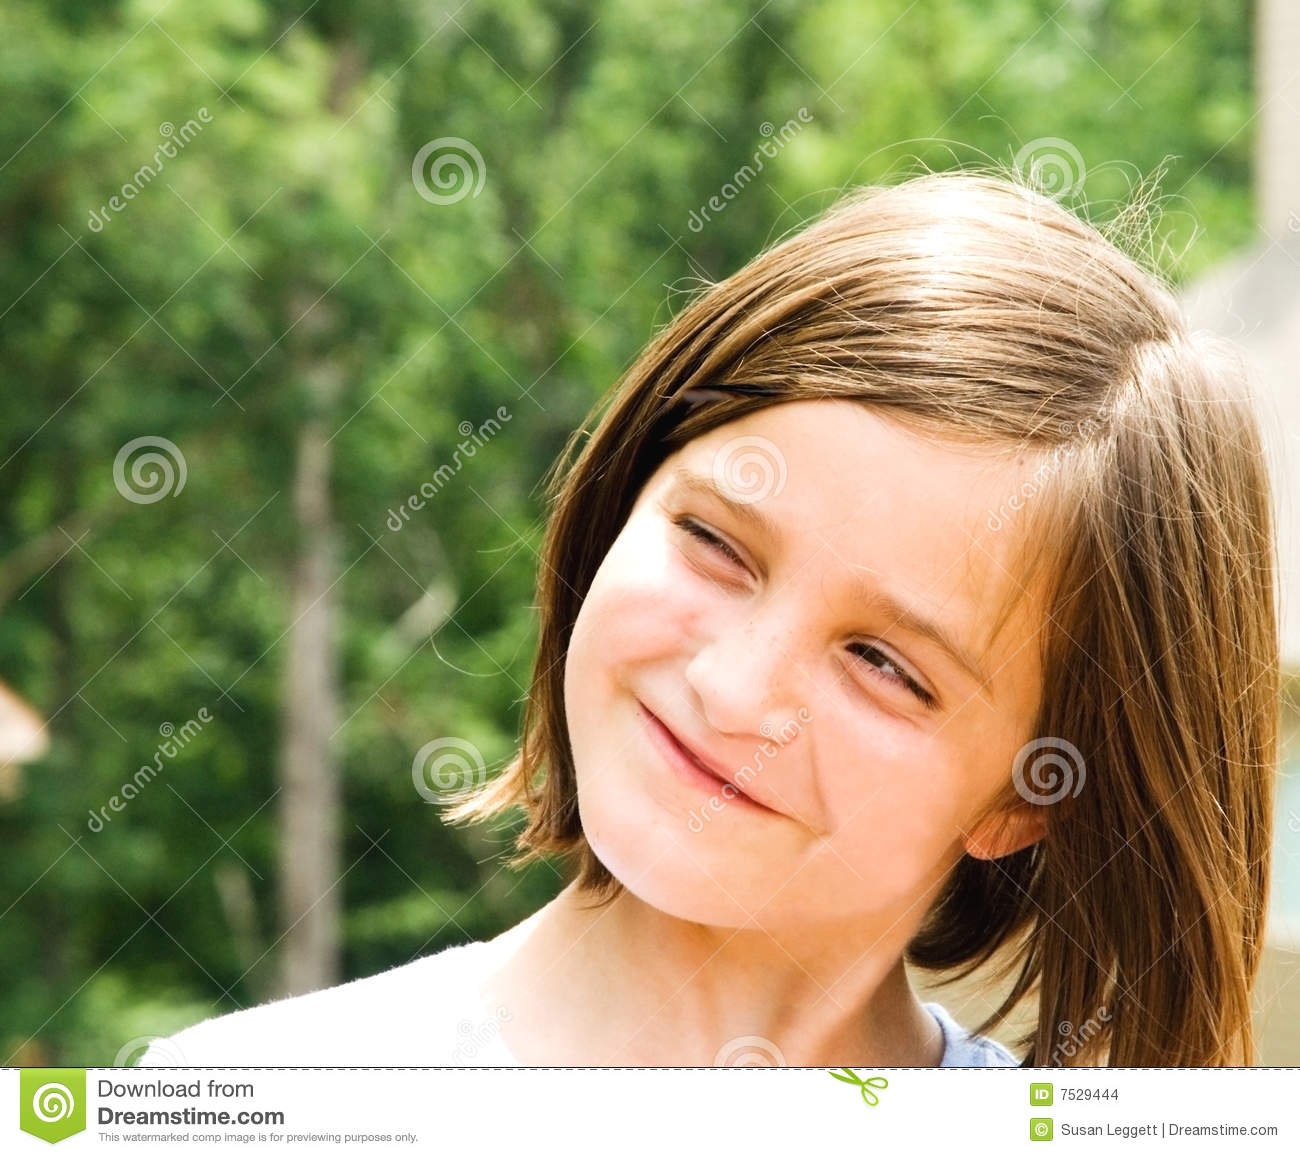 Young Girl Cute Expression Stock Image Silly